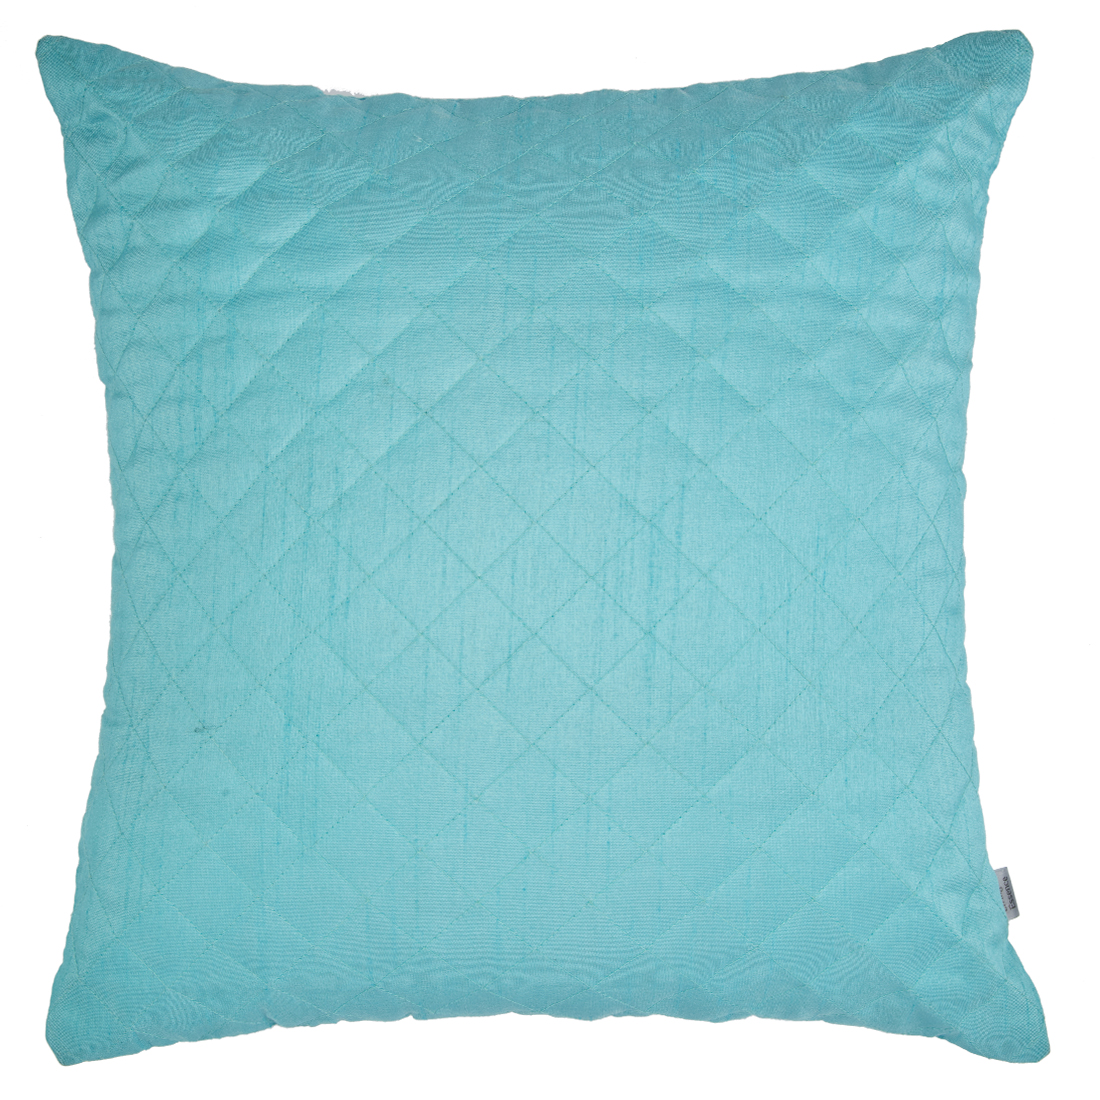 Cushion Cover Shelby Blue Cushion Covers in Poly Dupion Colour by Living Essence